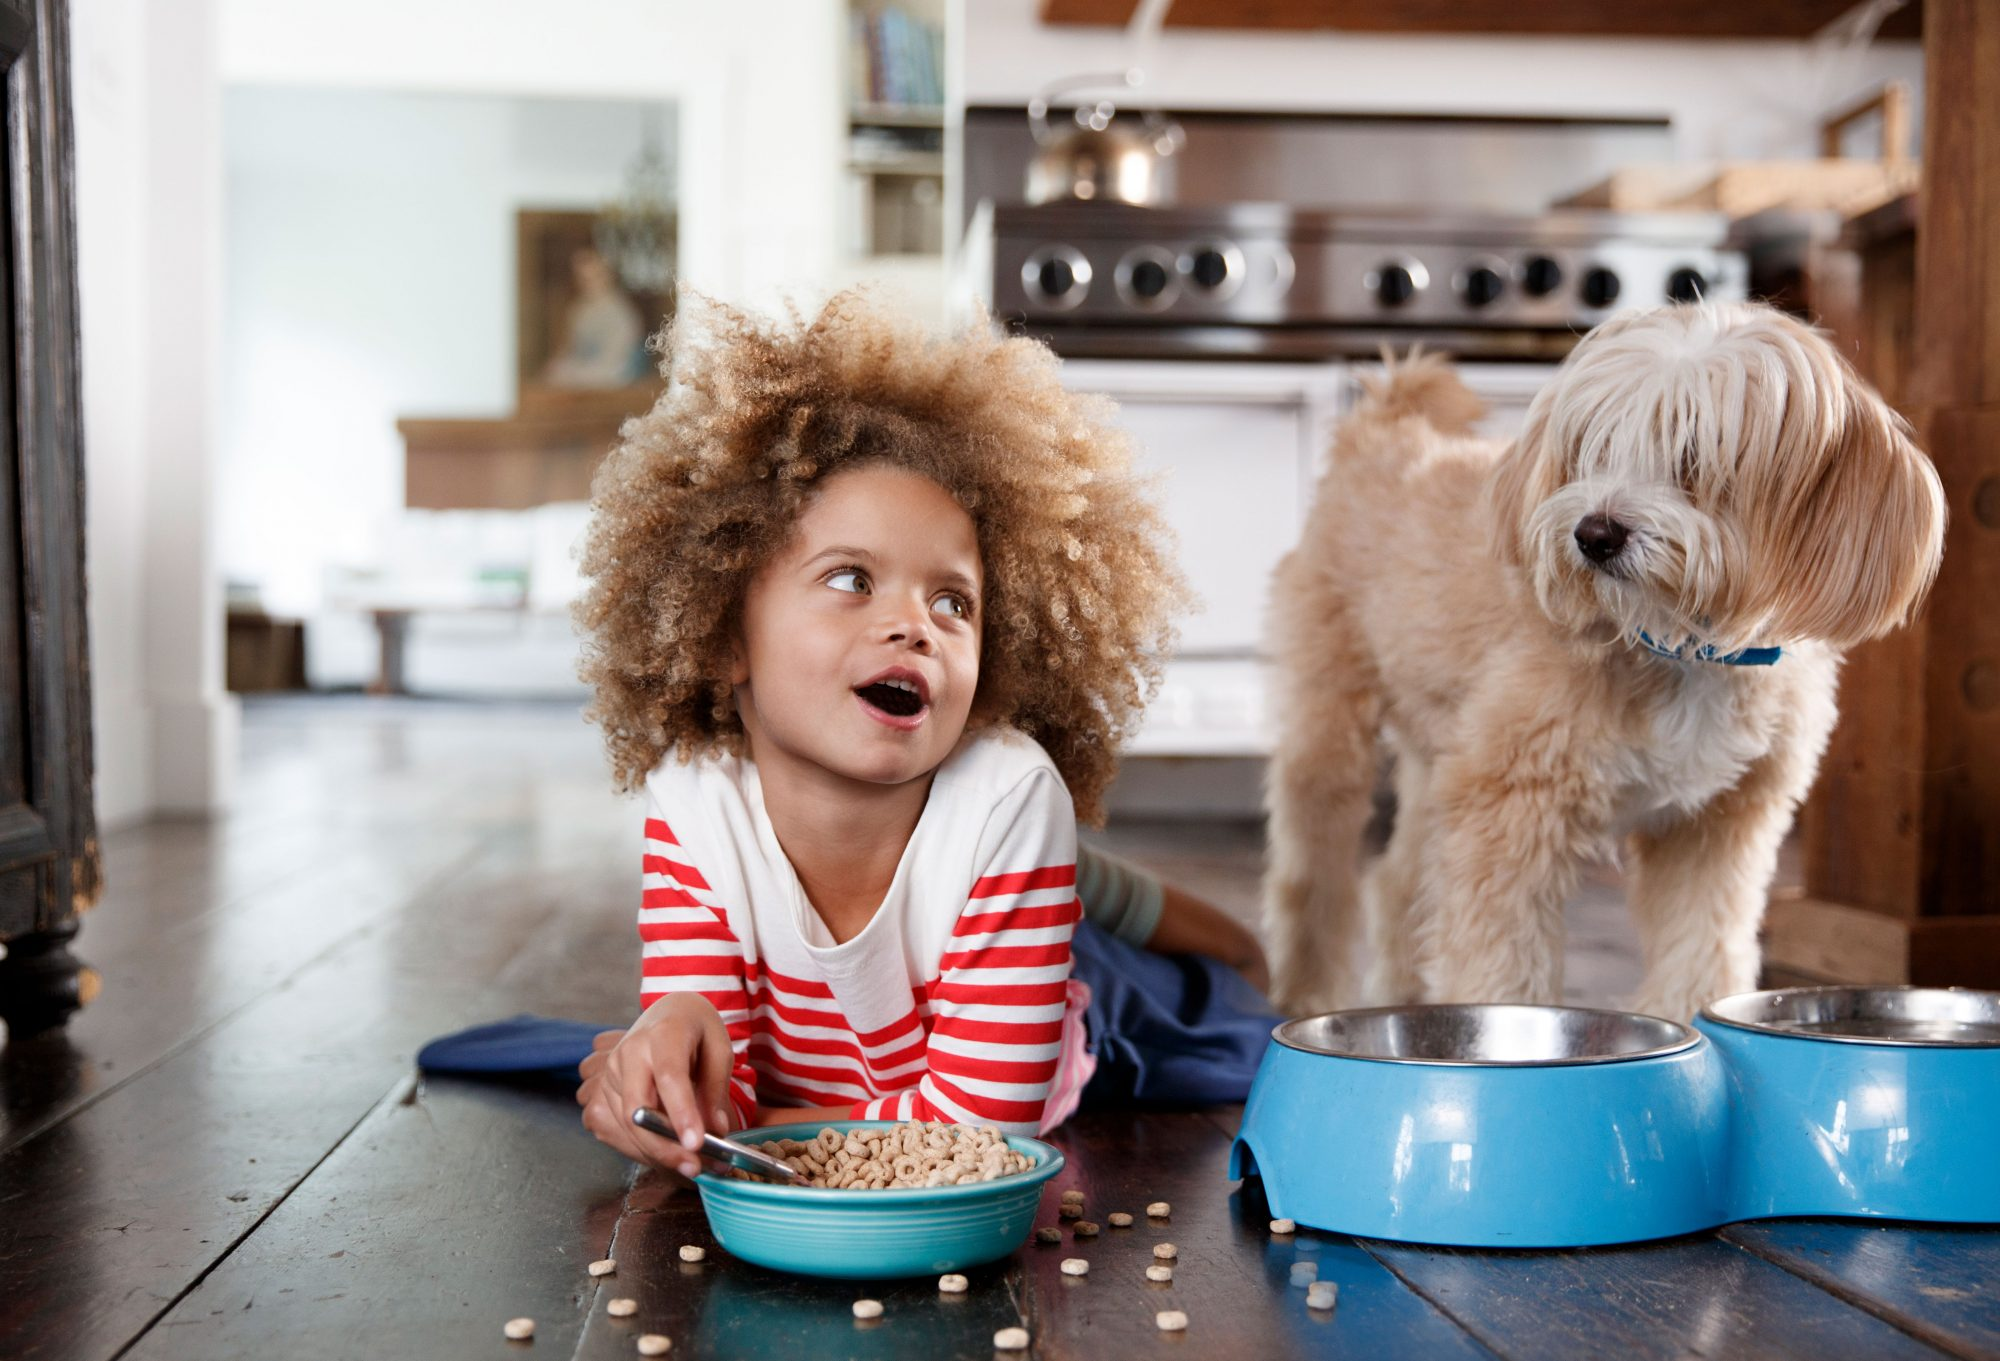 Girl with Dog on Kitchen Floor